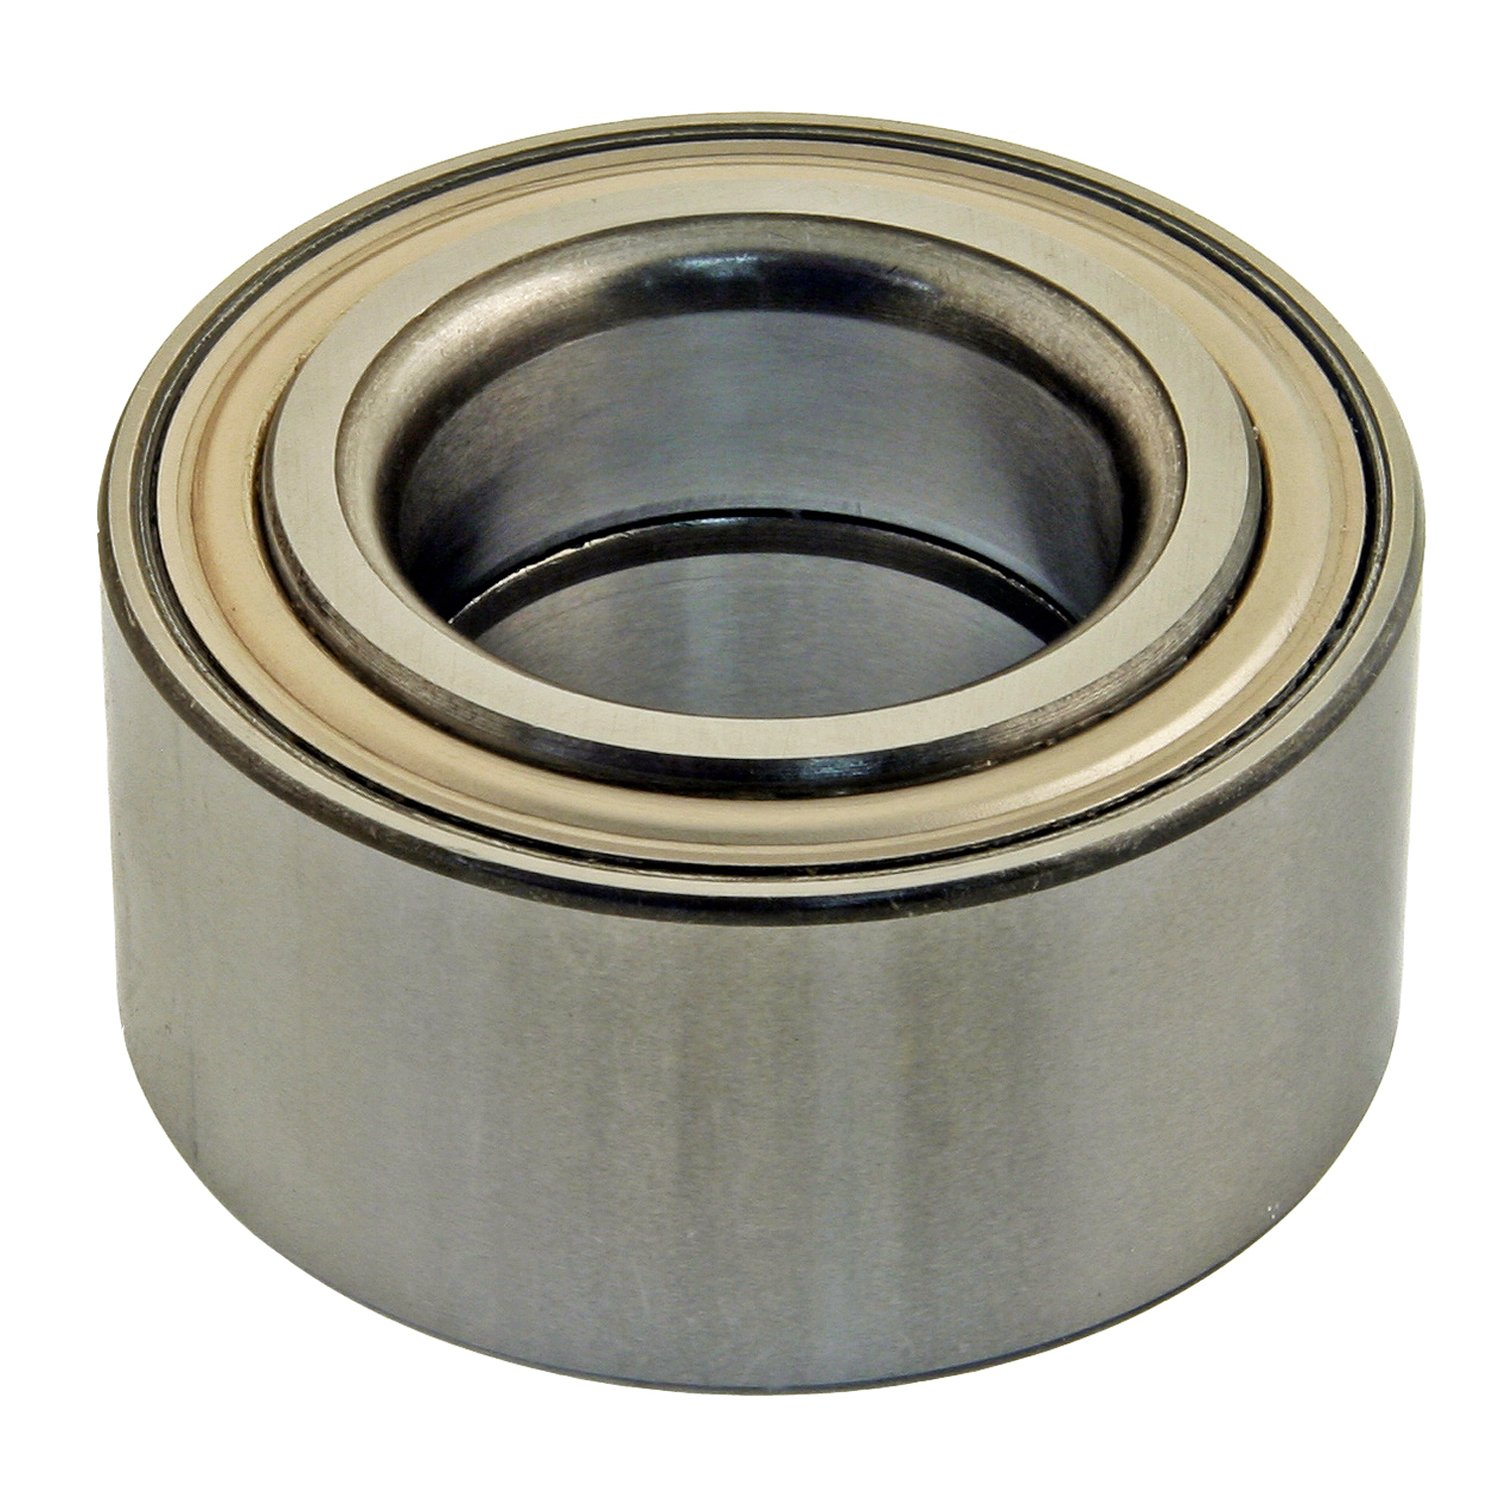 National SBK-3 Axle Shaft Bearing